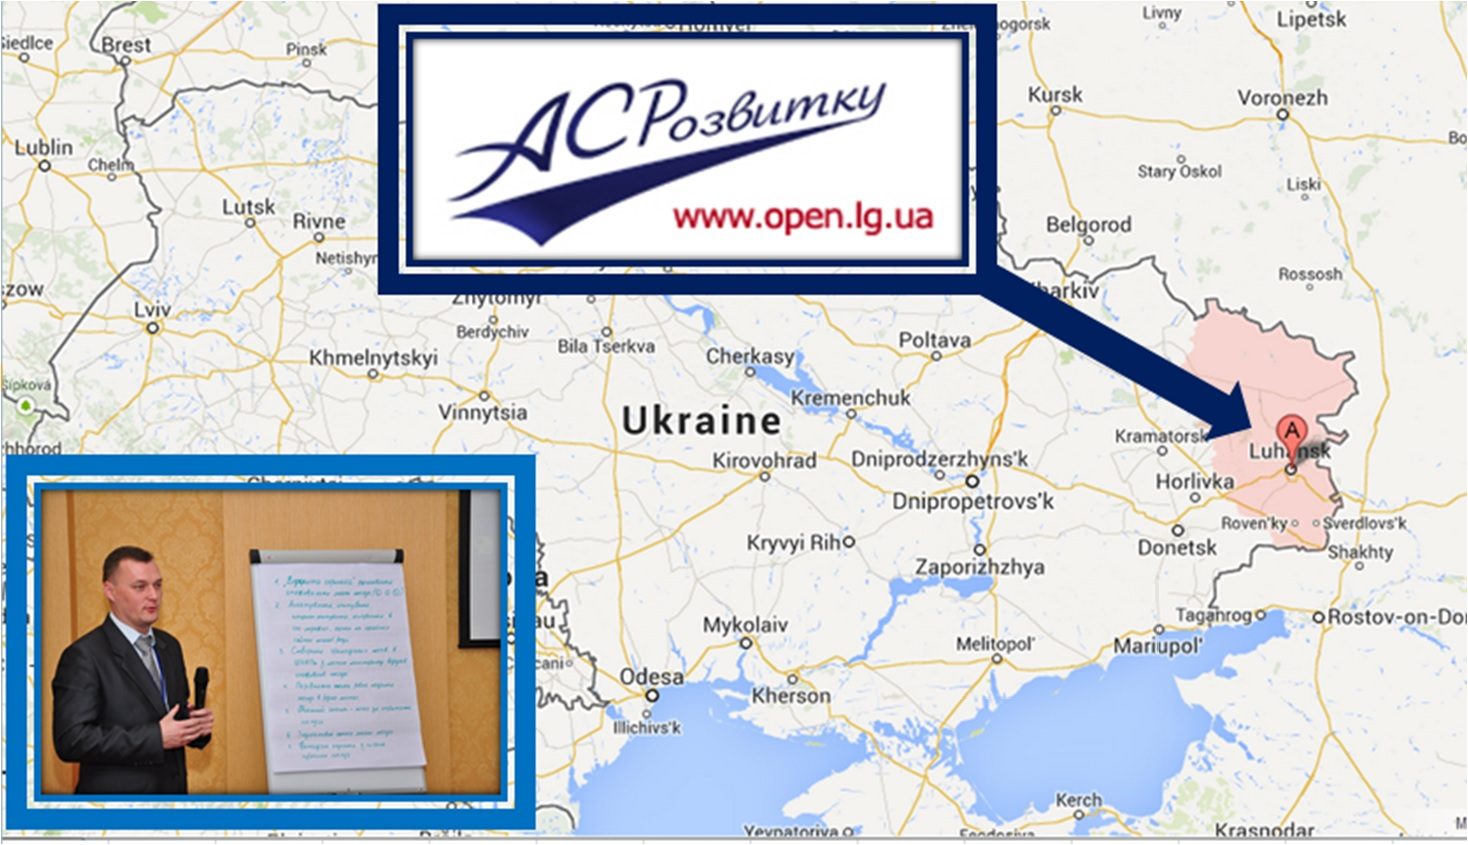 Providers in the Luhansk region: a selection of sites